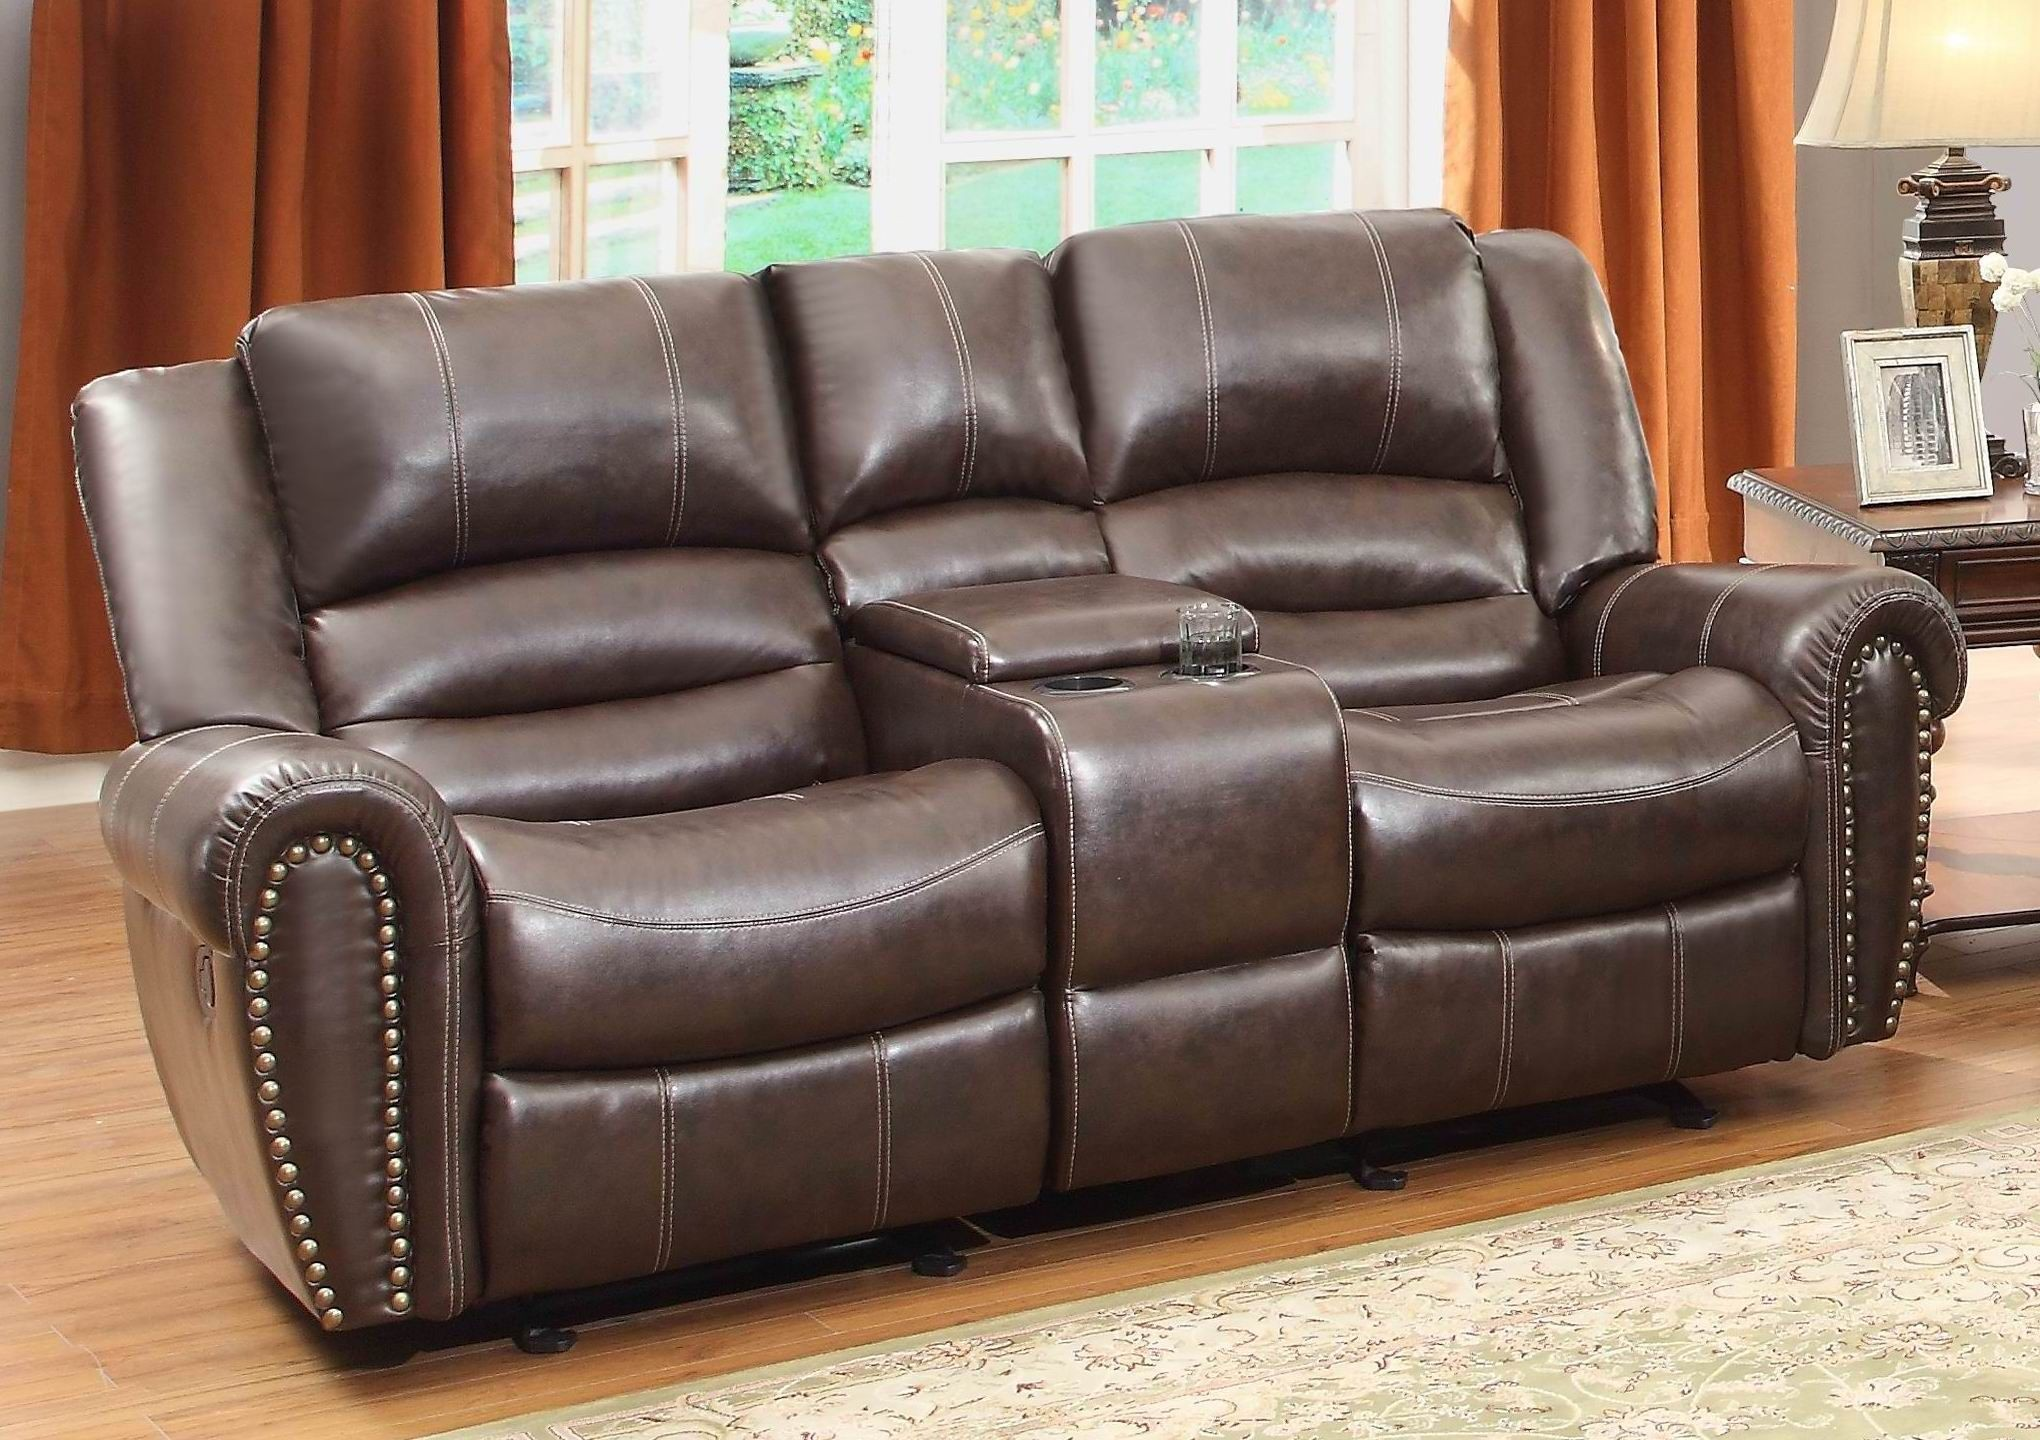 Center Hill Brown Double Glider Reclining Loveseat With